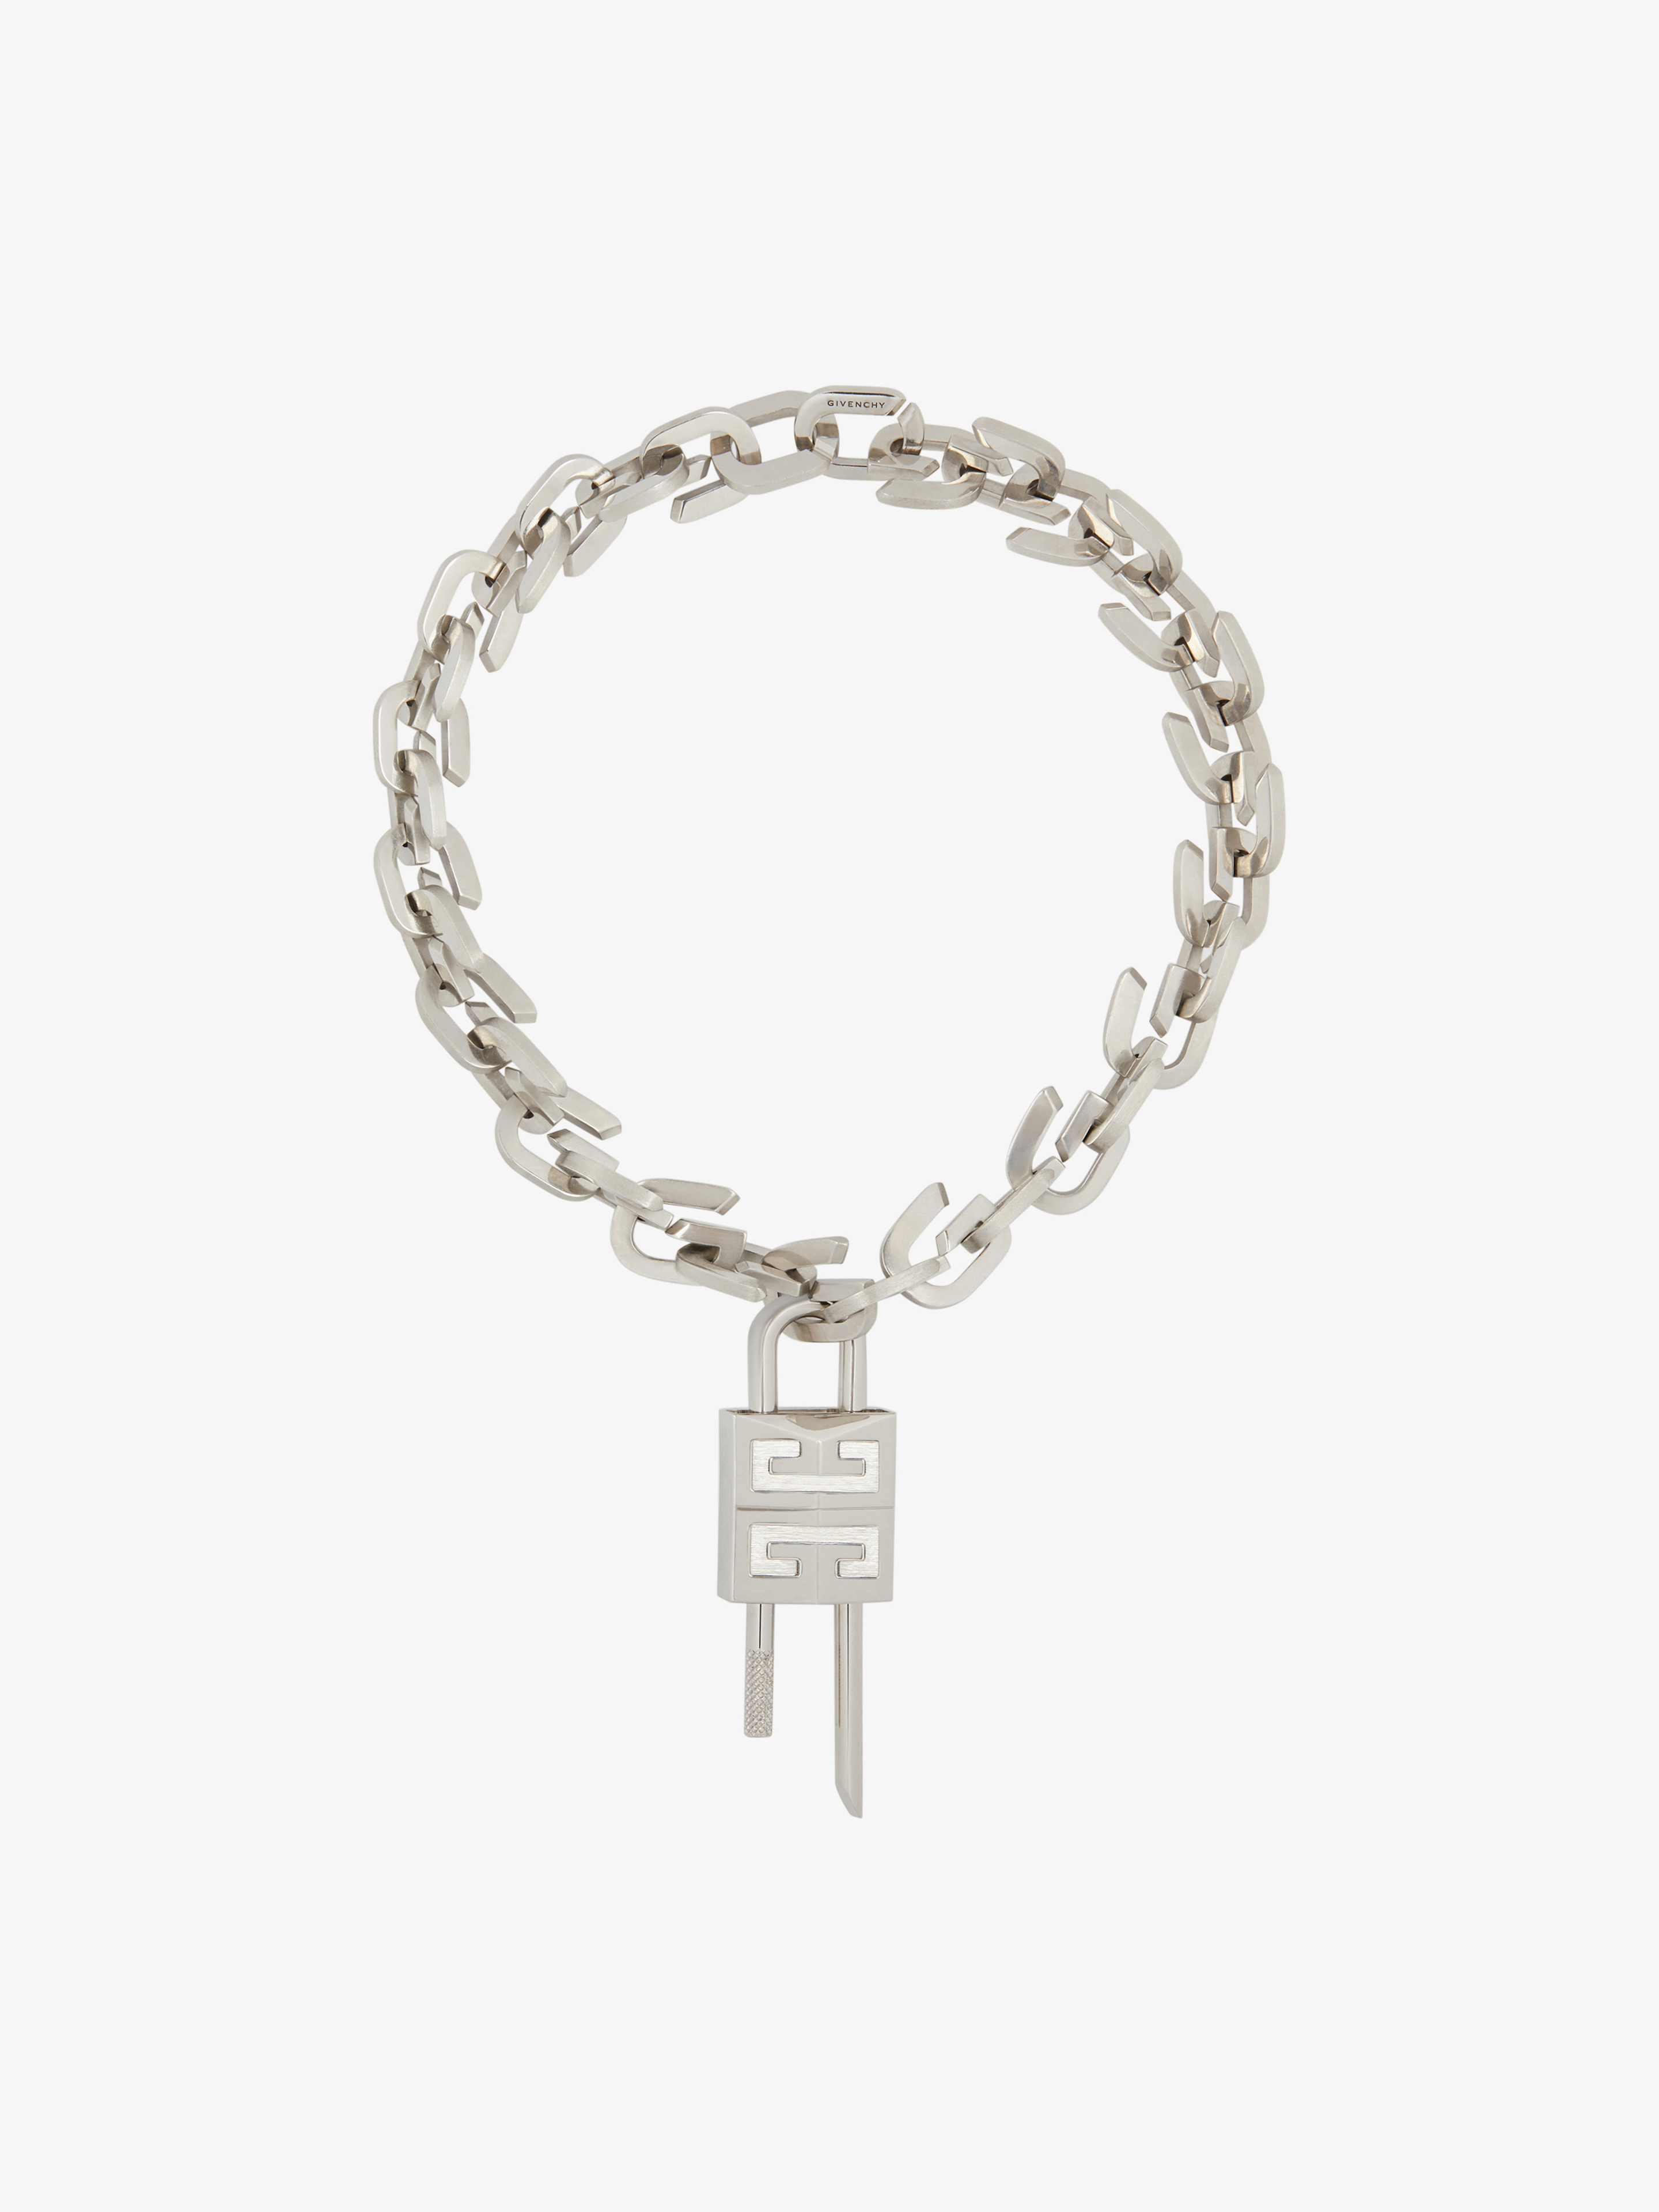 G Link necklace with padlock